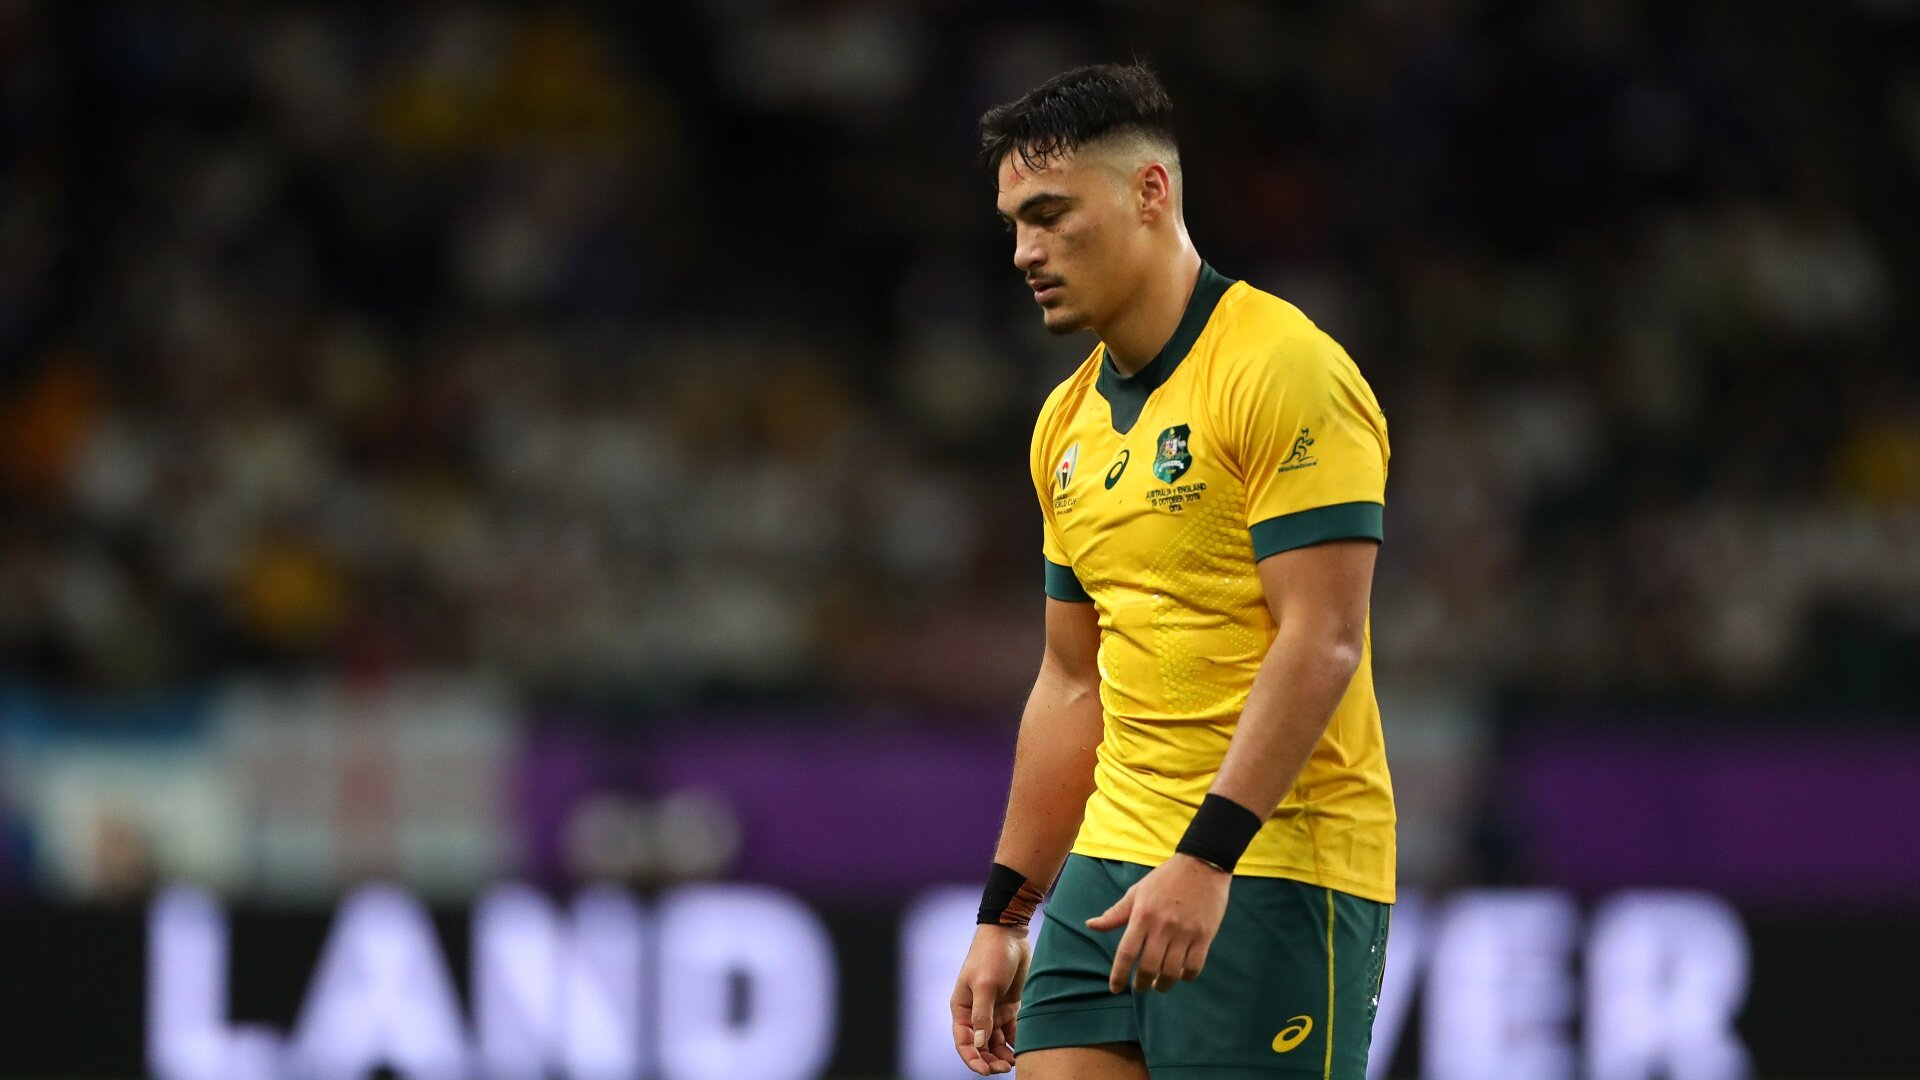 Report: Injury-plagued Wallabies star Jordan Petaia in doubt for Bledisloe Cup opener